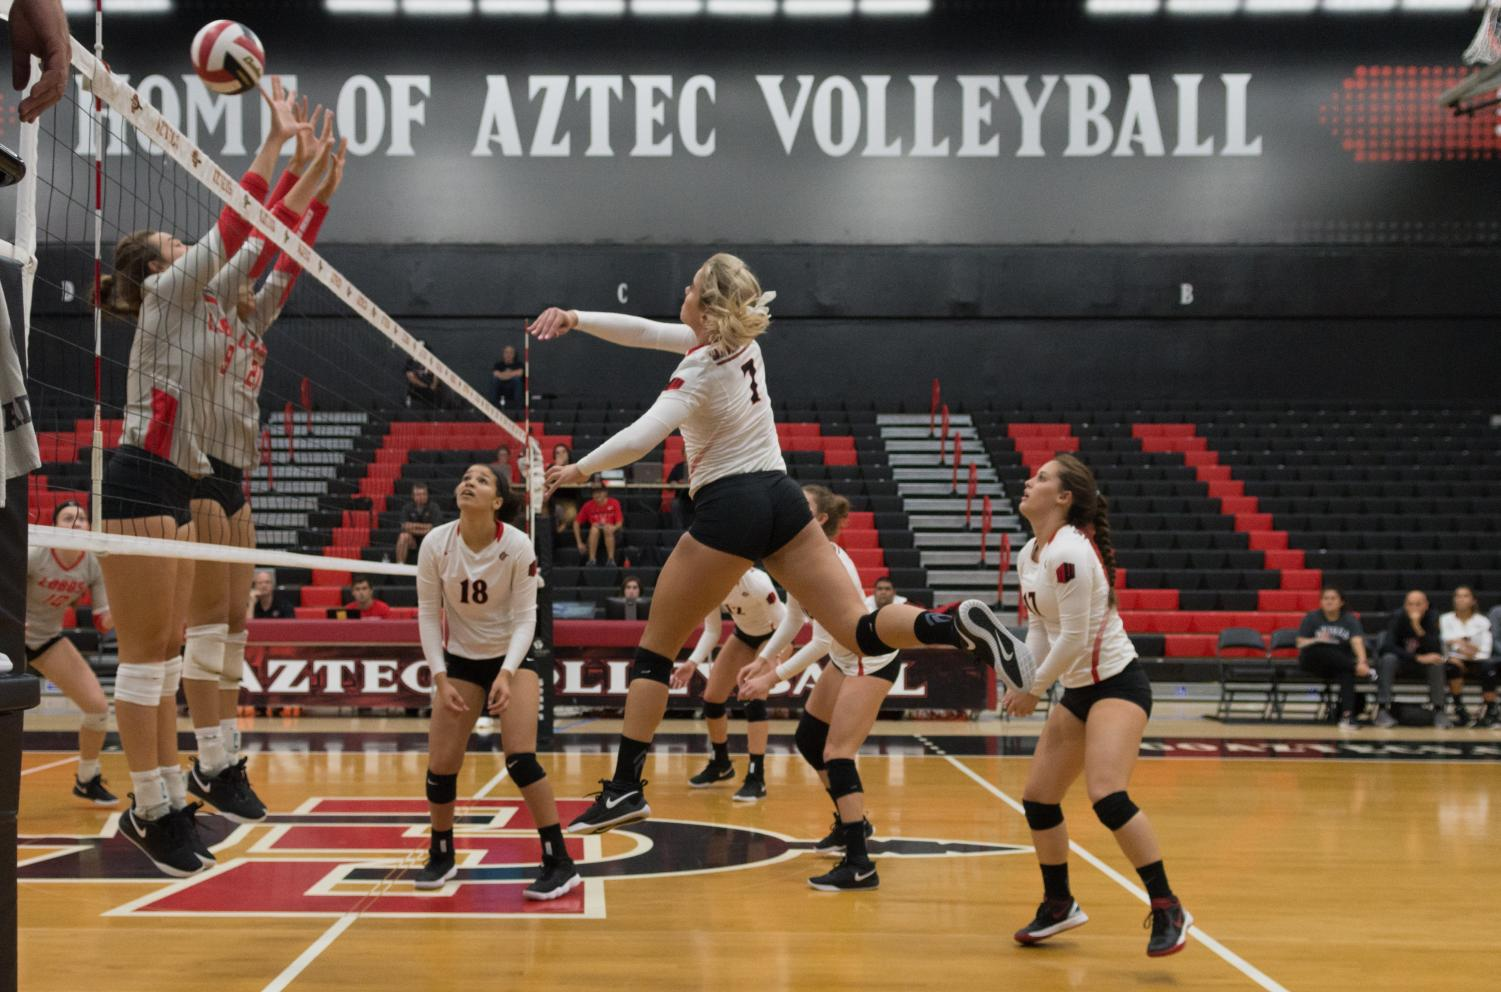 Junior outside hitter Hannah Turnlund spikes a ball over the outstretched arms of the Lobos defenders during the Aztecs four-set victory on Oct. 11 at Peterson Gym.